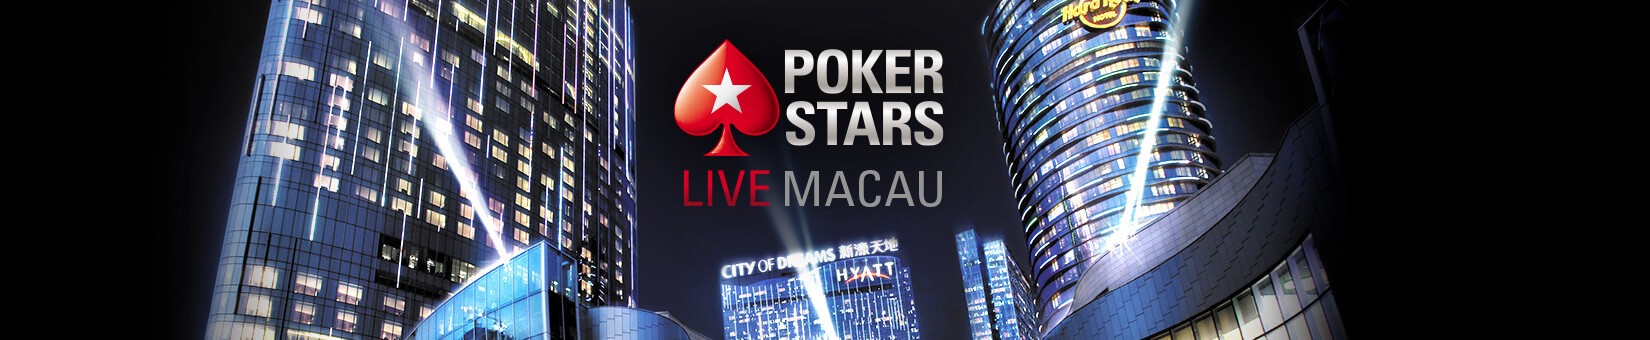 Pokerstars macau daily tournament